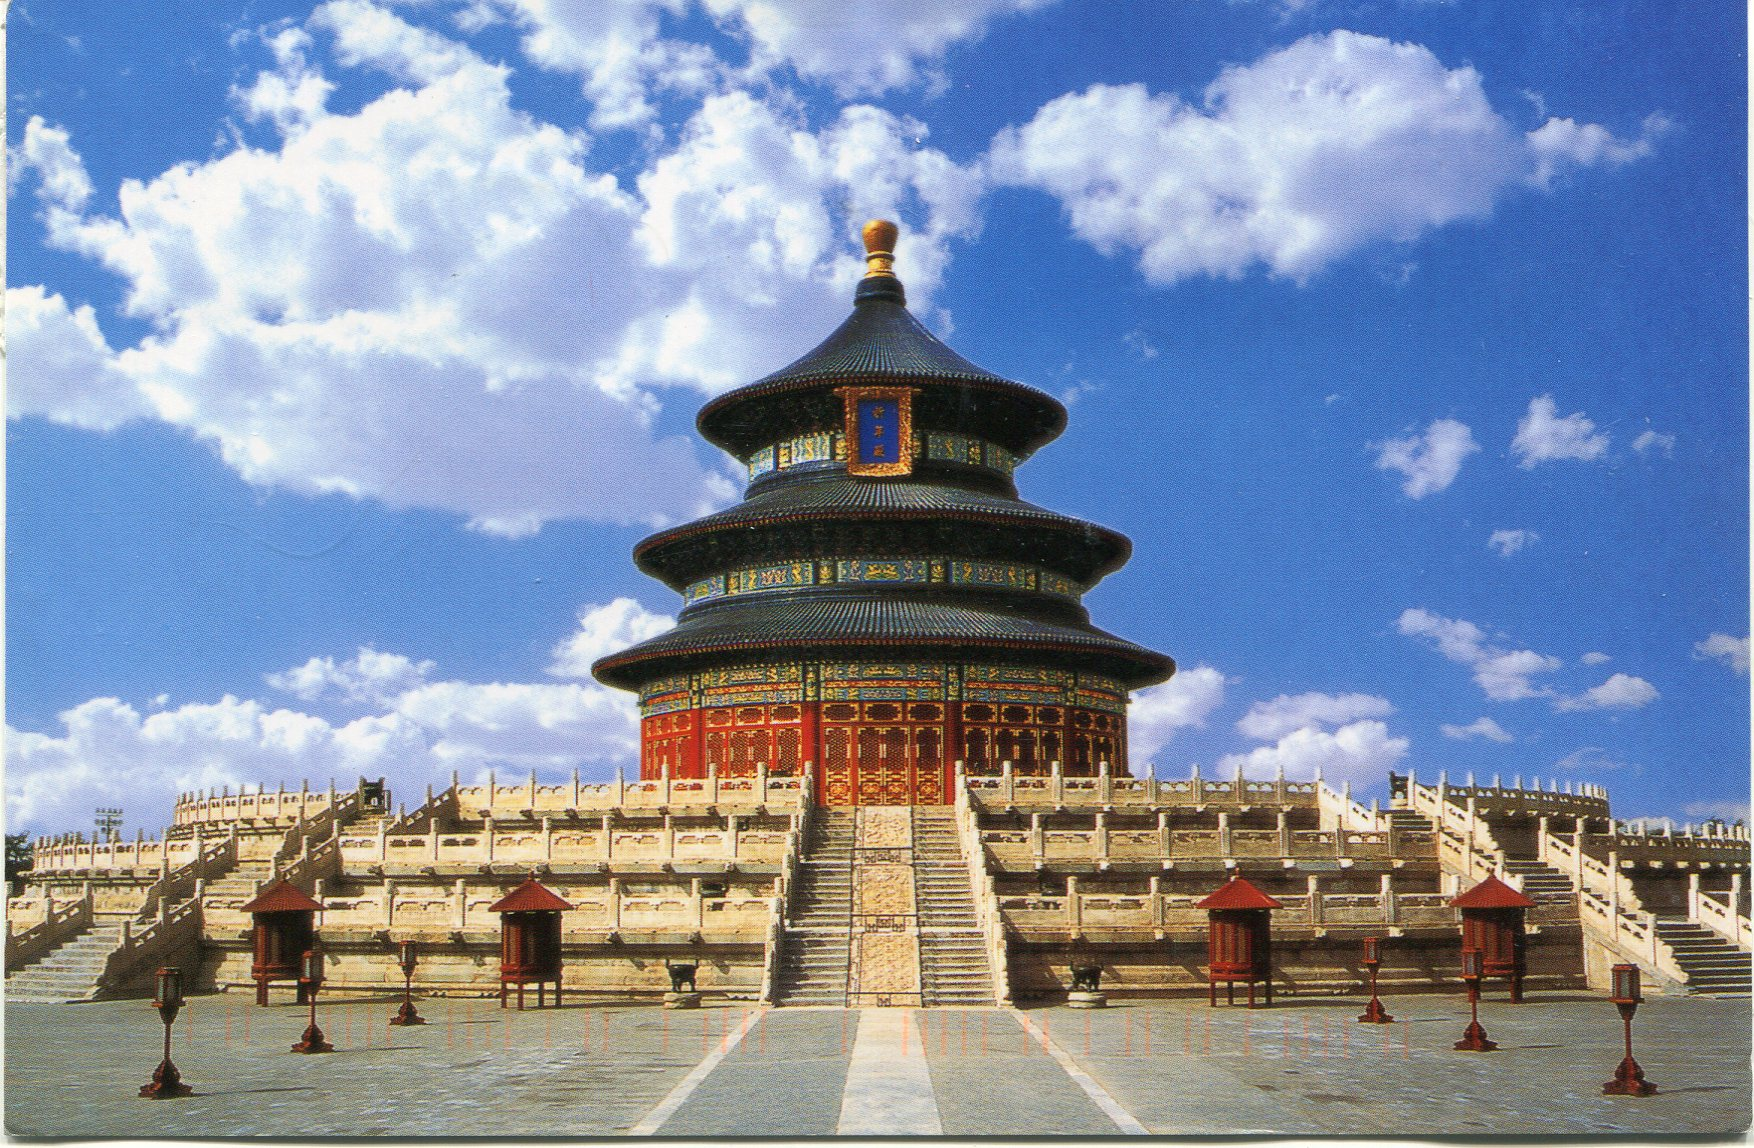 Temple of Heaven & Hutong Layover Tour